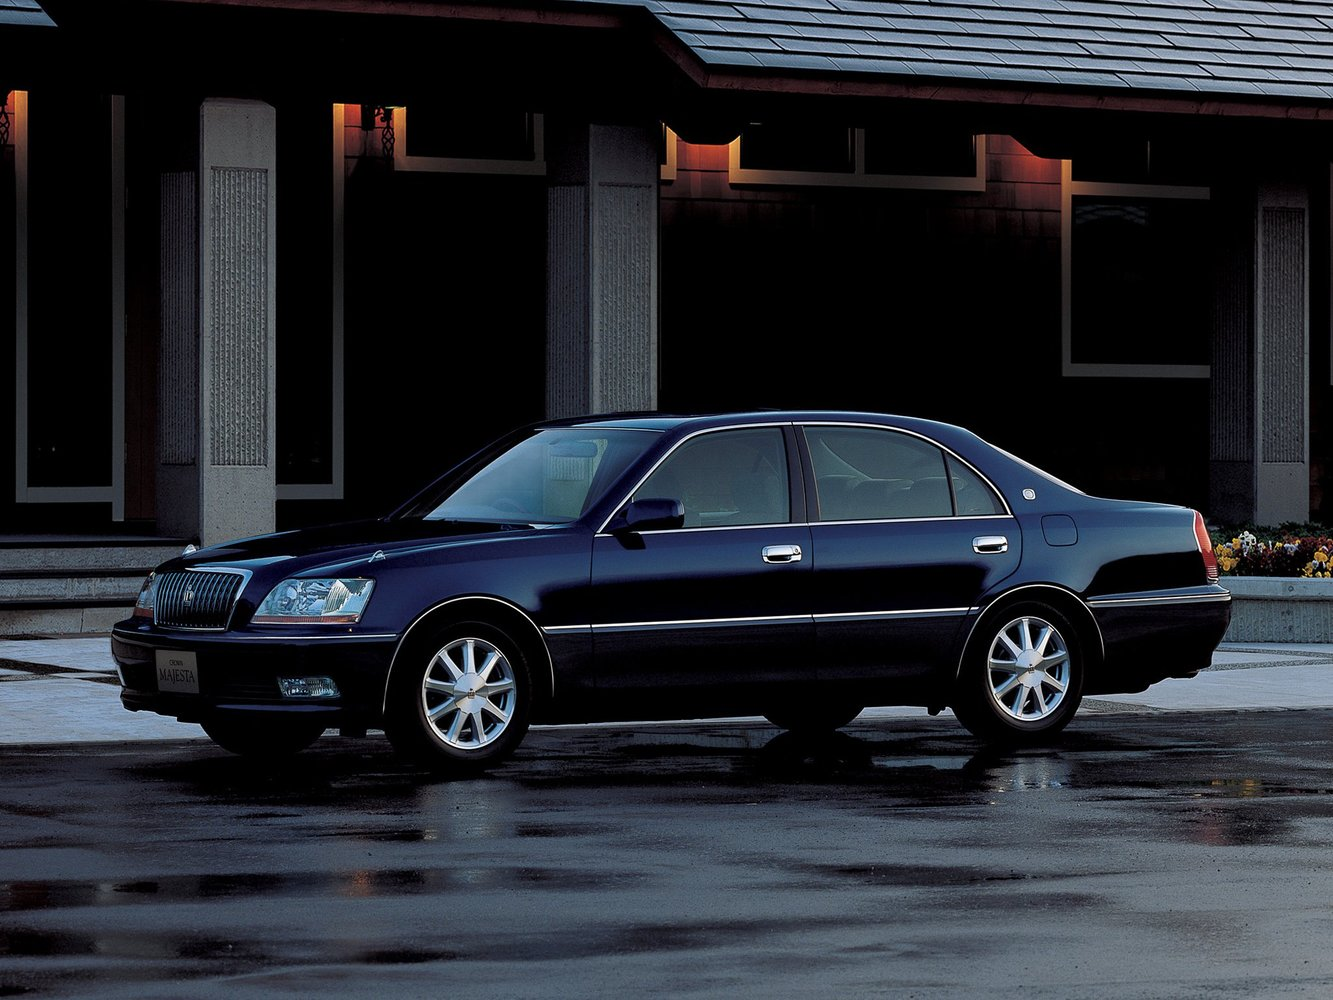 седан Majesta Toyota Crown Majesta 1999 - 2004г выпуска модификация 3.0 AT (220 л.с.)